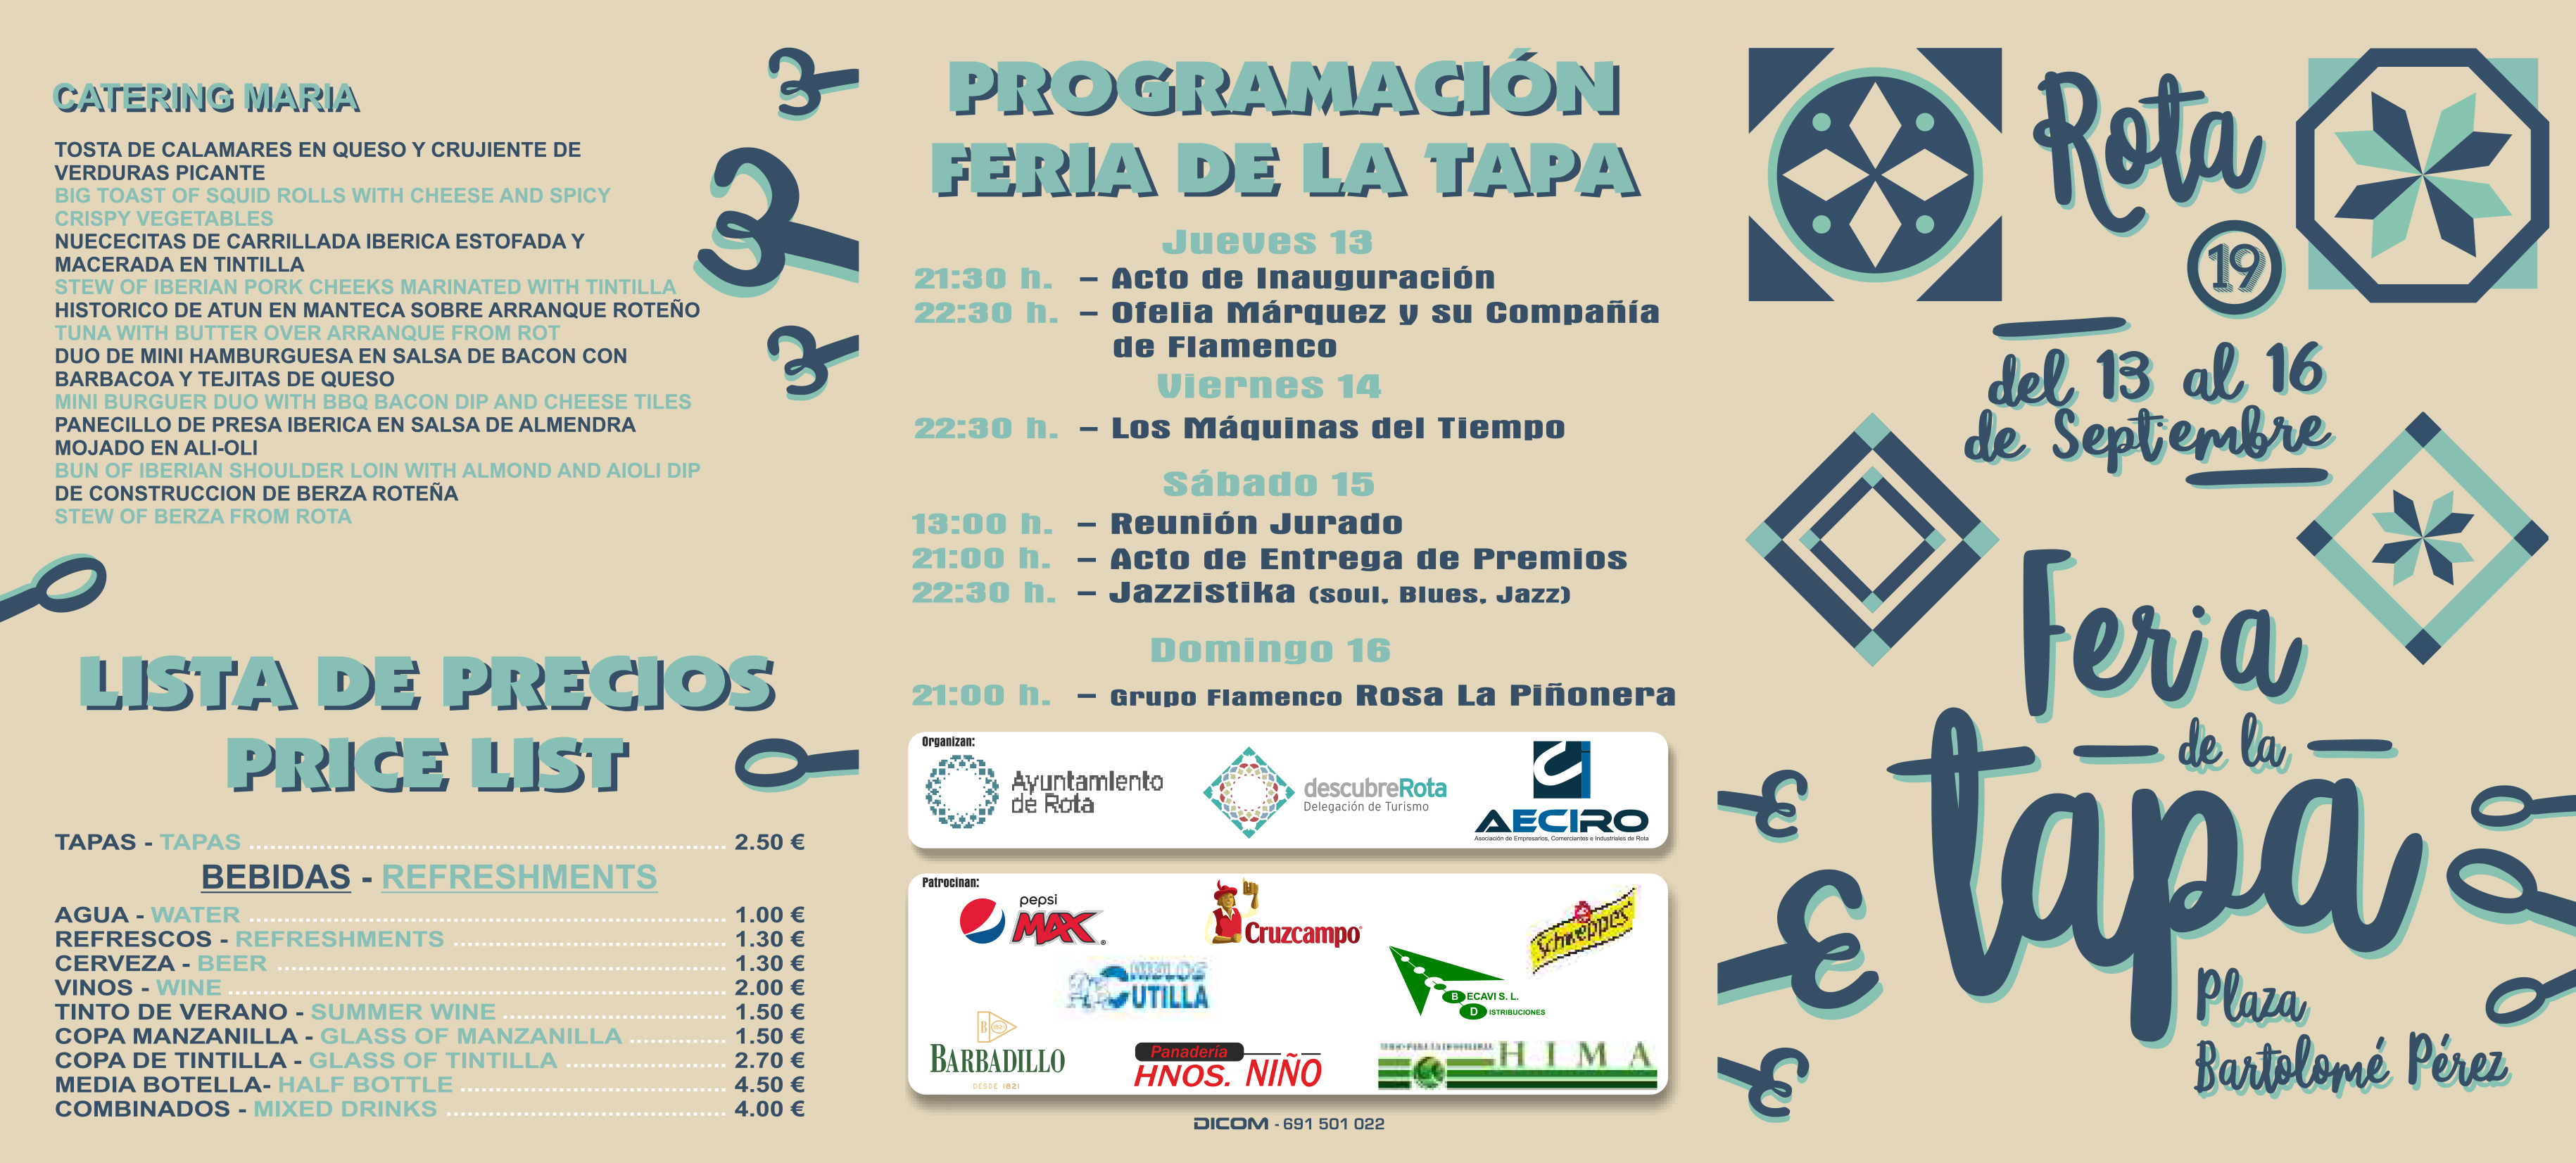 Folletto XIX Feria de la Tapa - Hoja 1